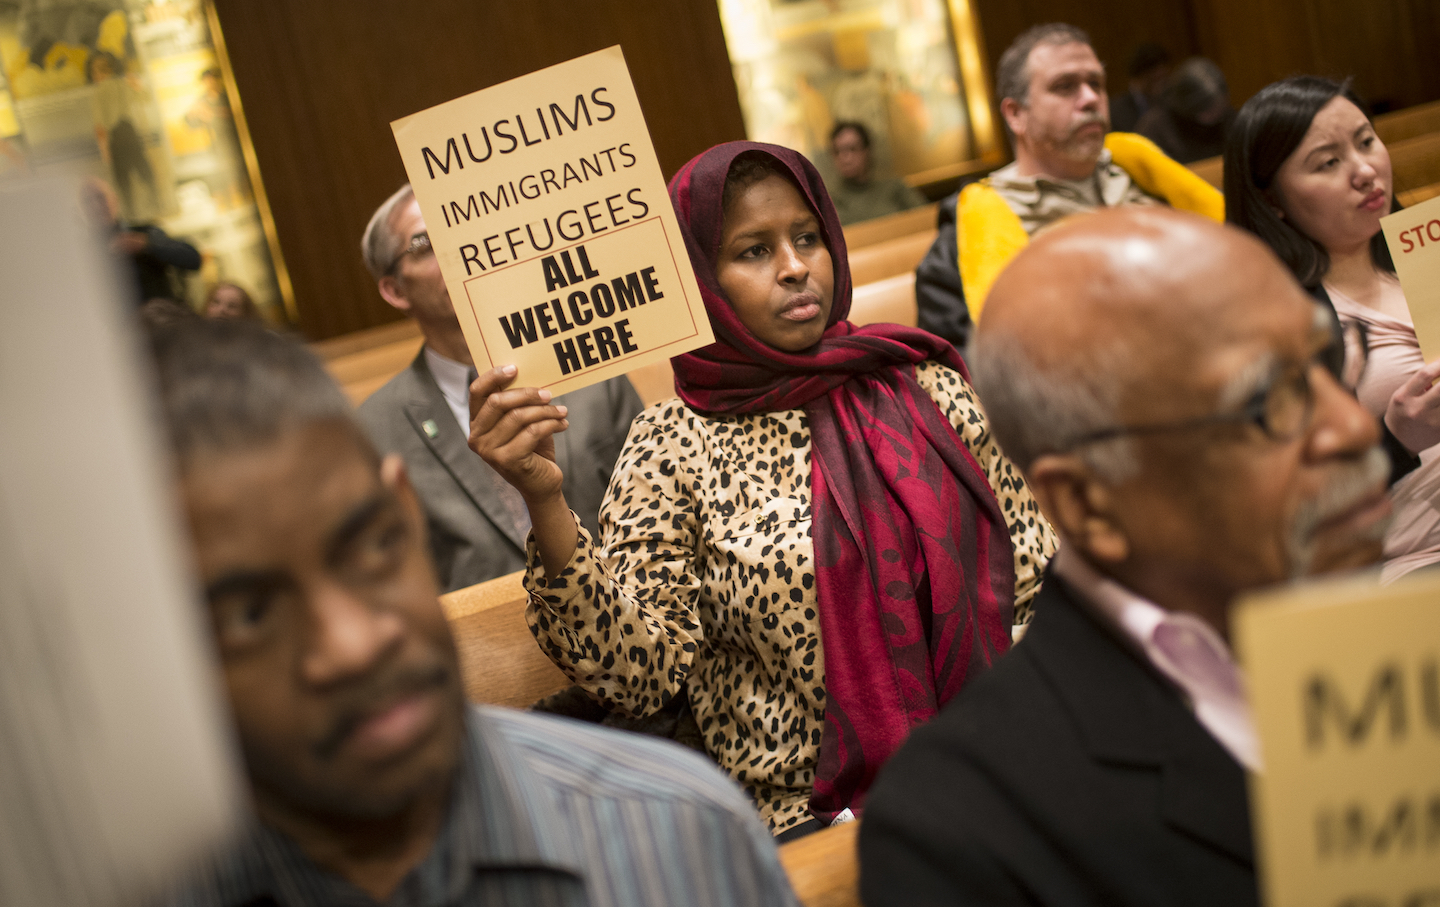 Farhio Khalif, an immigrant from Somalia, holds a sign